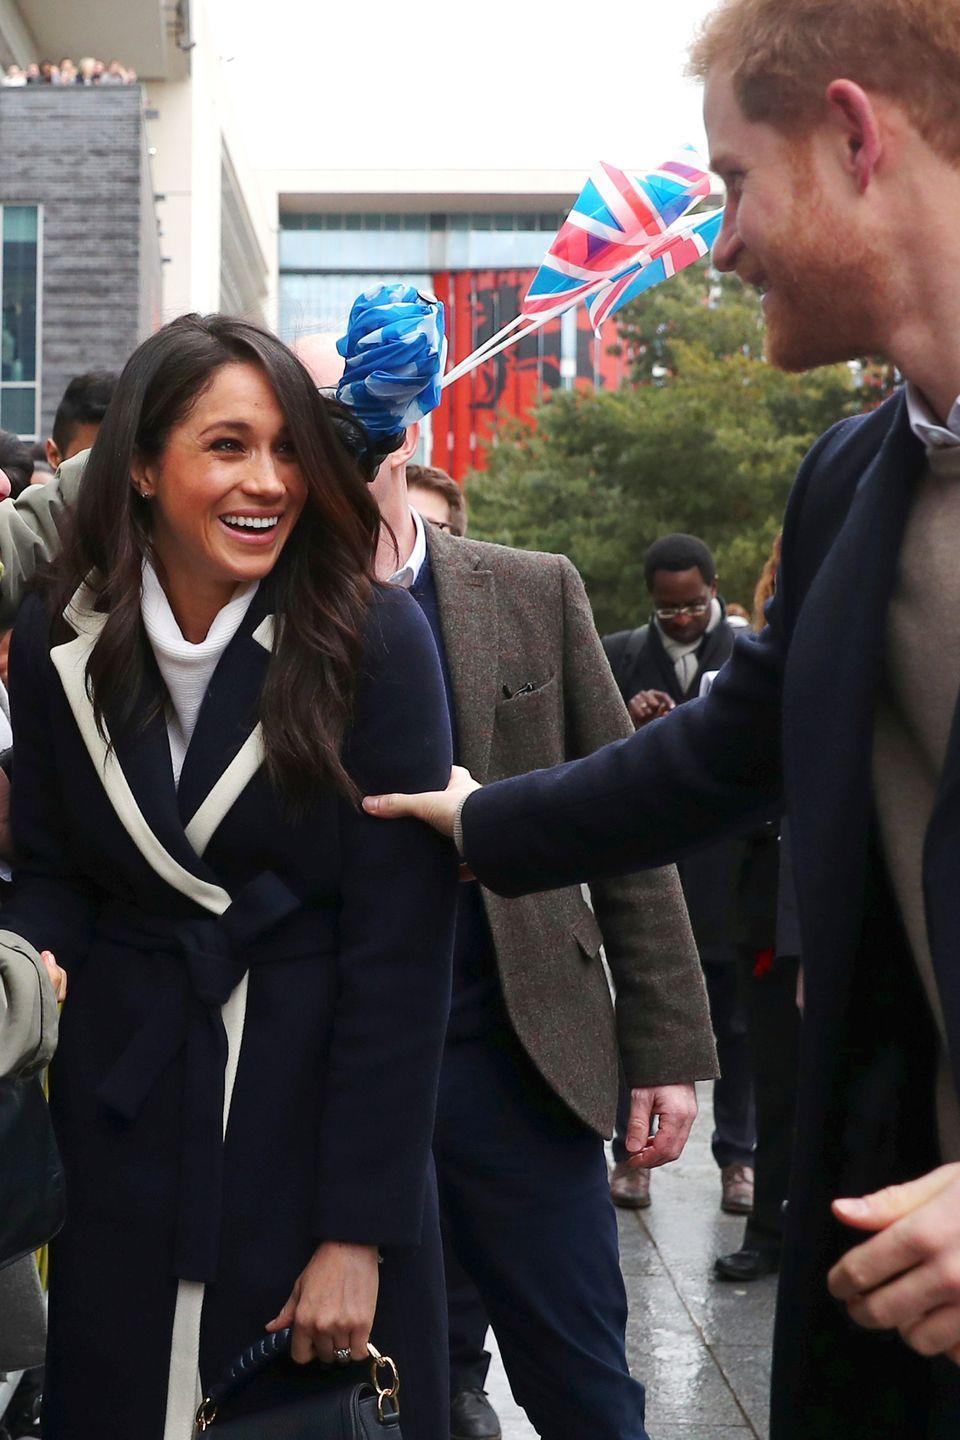 """<p>Always giggling, an up-close photographer captured this sweet shot of Prince Harry and Meghan Markle laughing at each other during a visit to Birmingham, England, on <a href=""""https://www.harpersbazaar.com/celebrity/latest/a19174954/meghan-markle-prince-harry-birmingham-visit/"""" rel=""""nofollow noopener"""" target=""""_blank"""" data-ylk=""""slk:International Women's Day"""" class=""""link rapid-noclick-resp"""">International Women's Day</a>. </p>"""